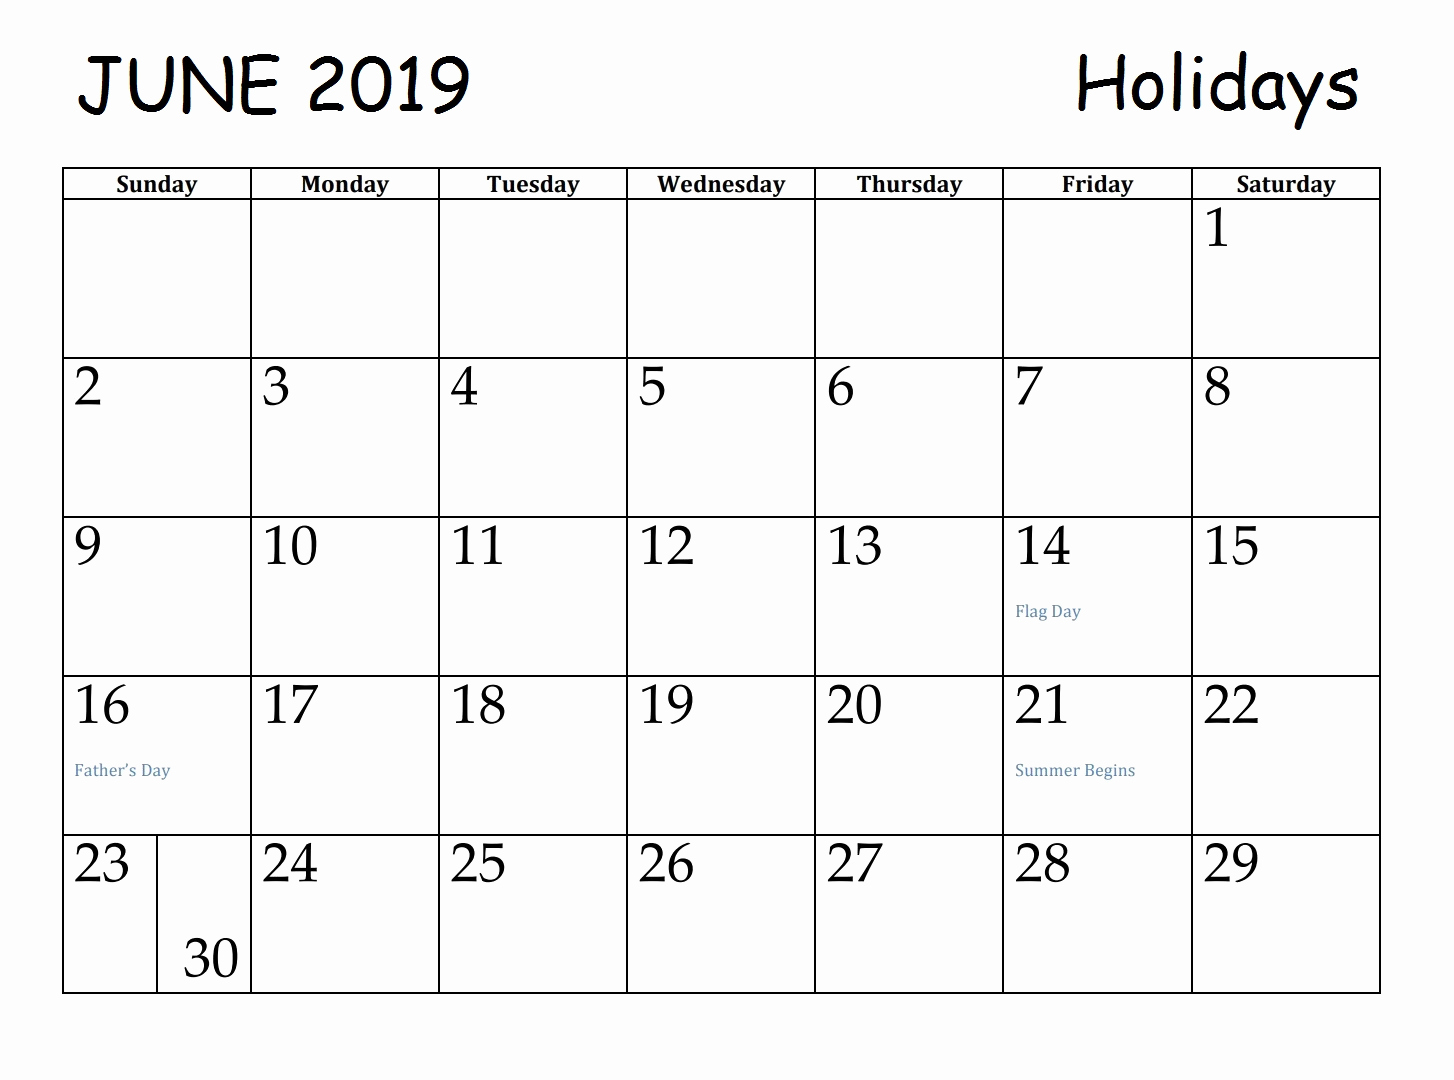 June 2019 Calendar With Holidays US